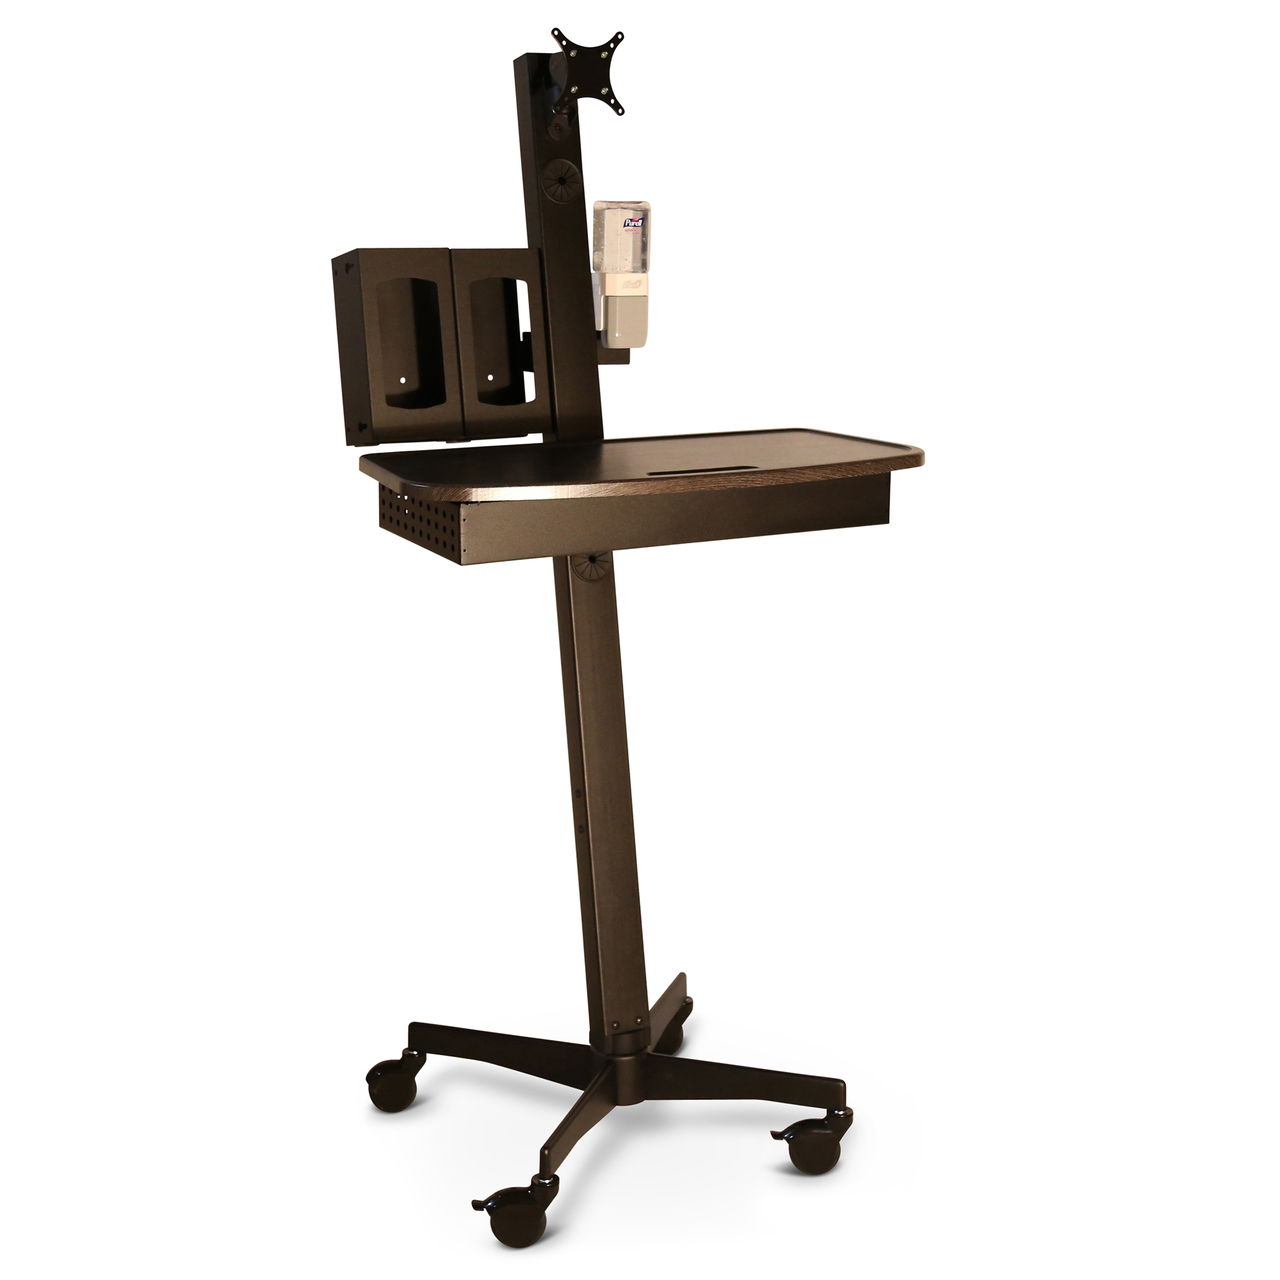 Mov-it Multiflex Cart Mobile Workstation Infection Prevention